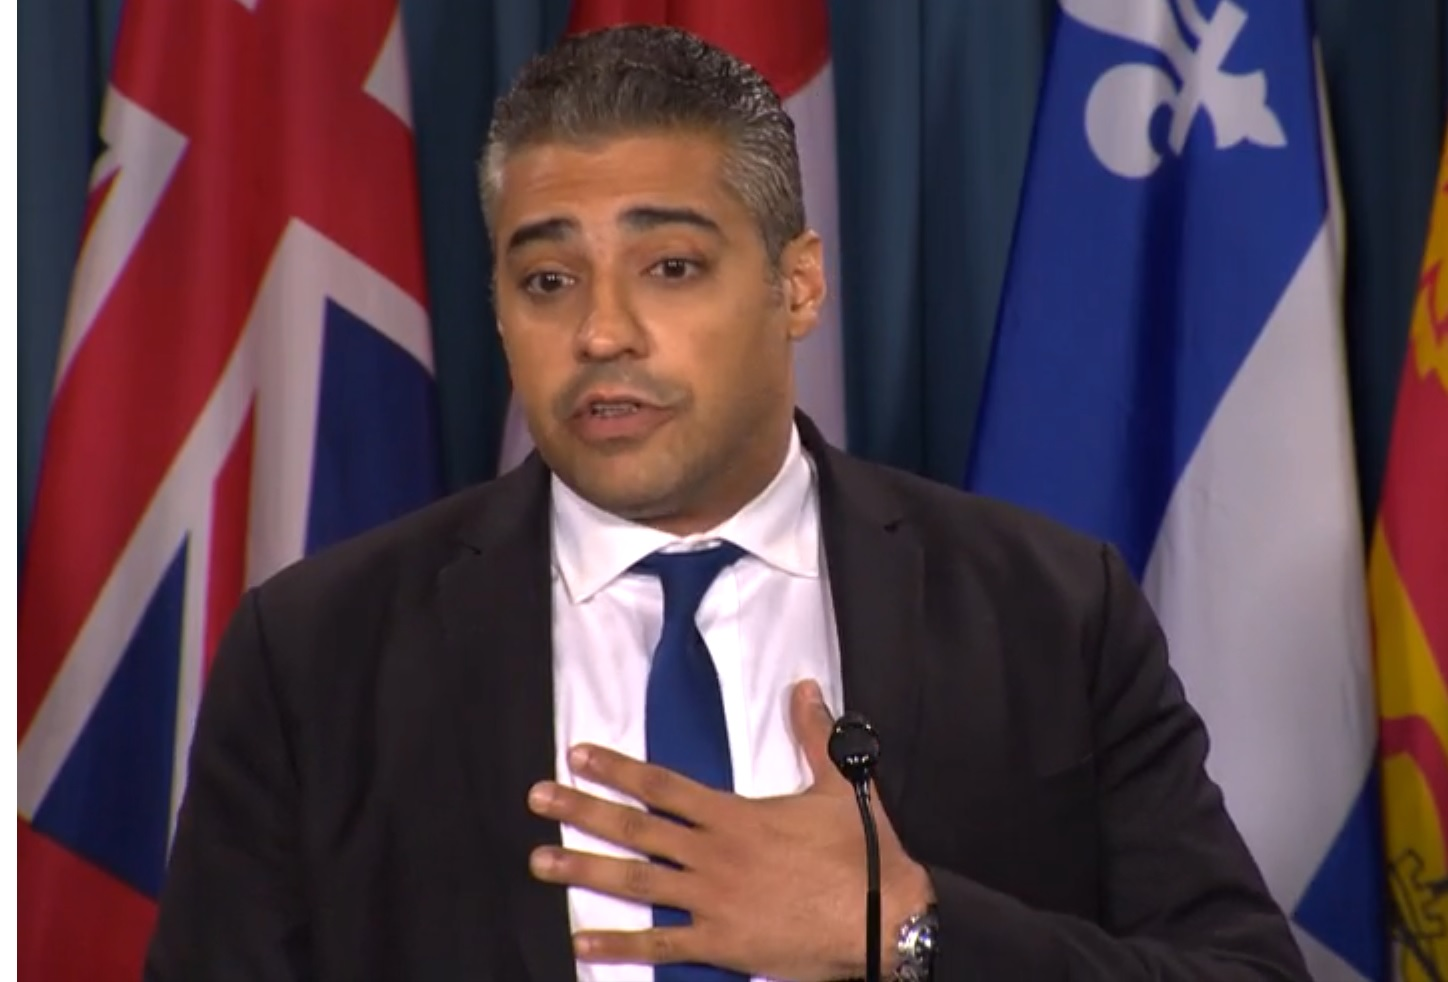 Fahmy_Protection_Charter_Image_1.jpg